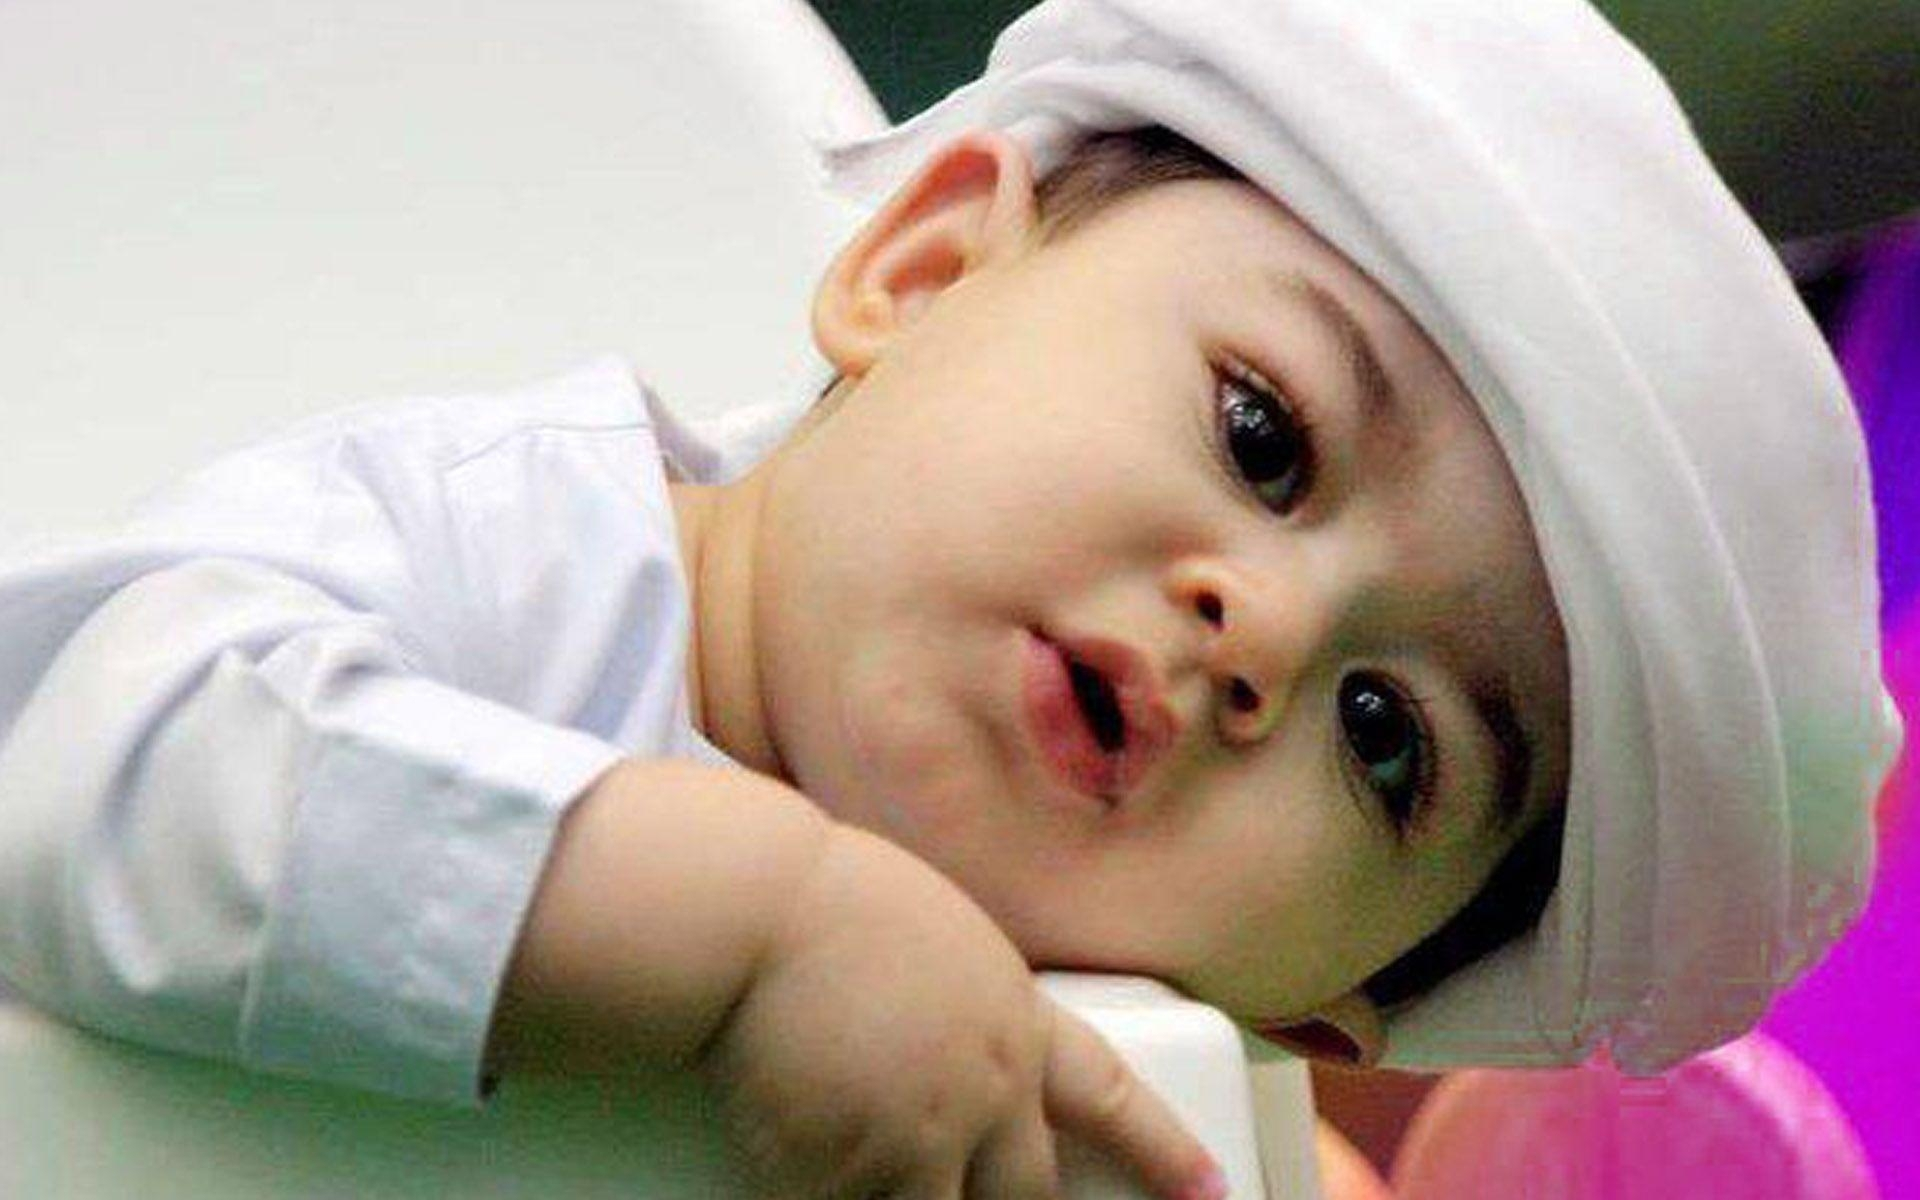 cute baby boy wallpaper backgrounds images for mobile phones full hd